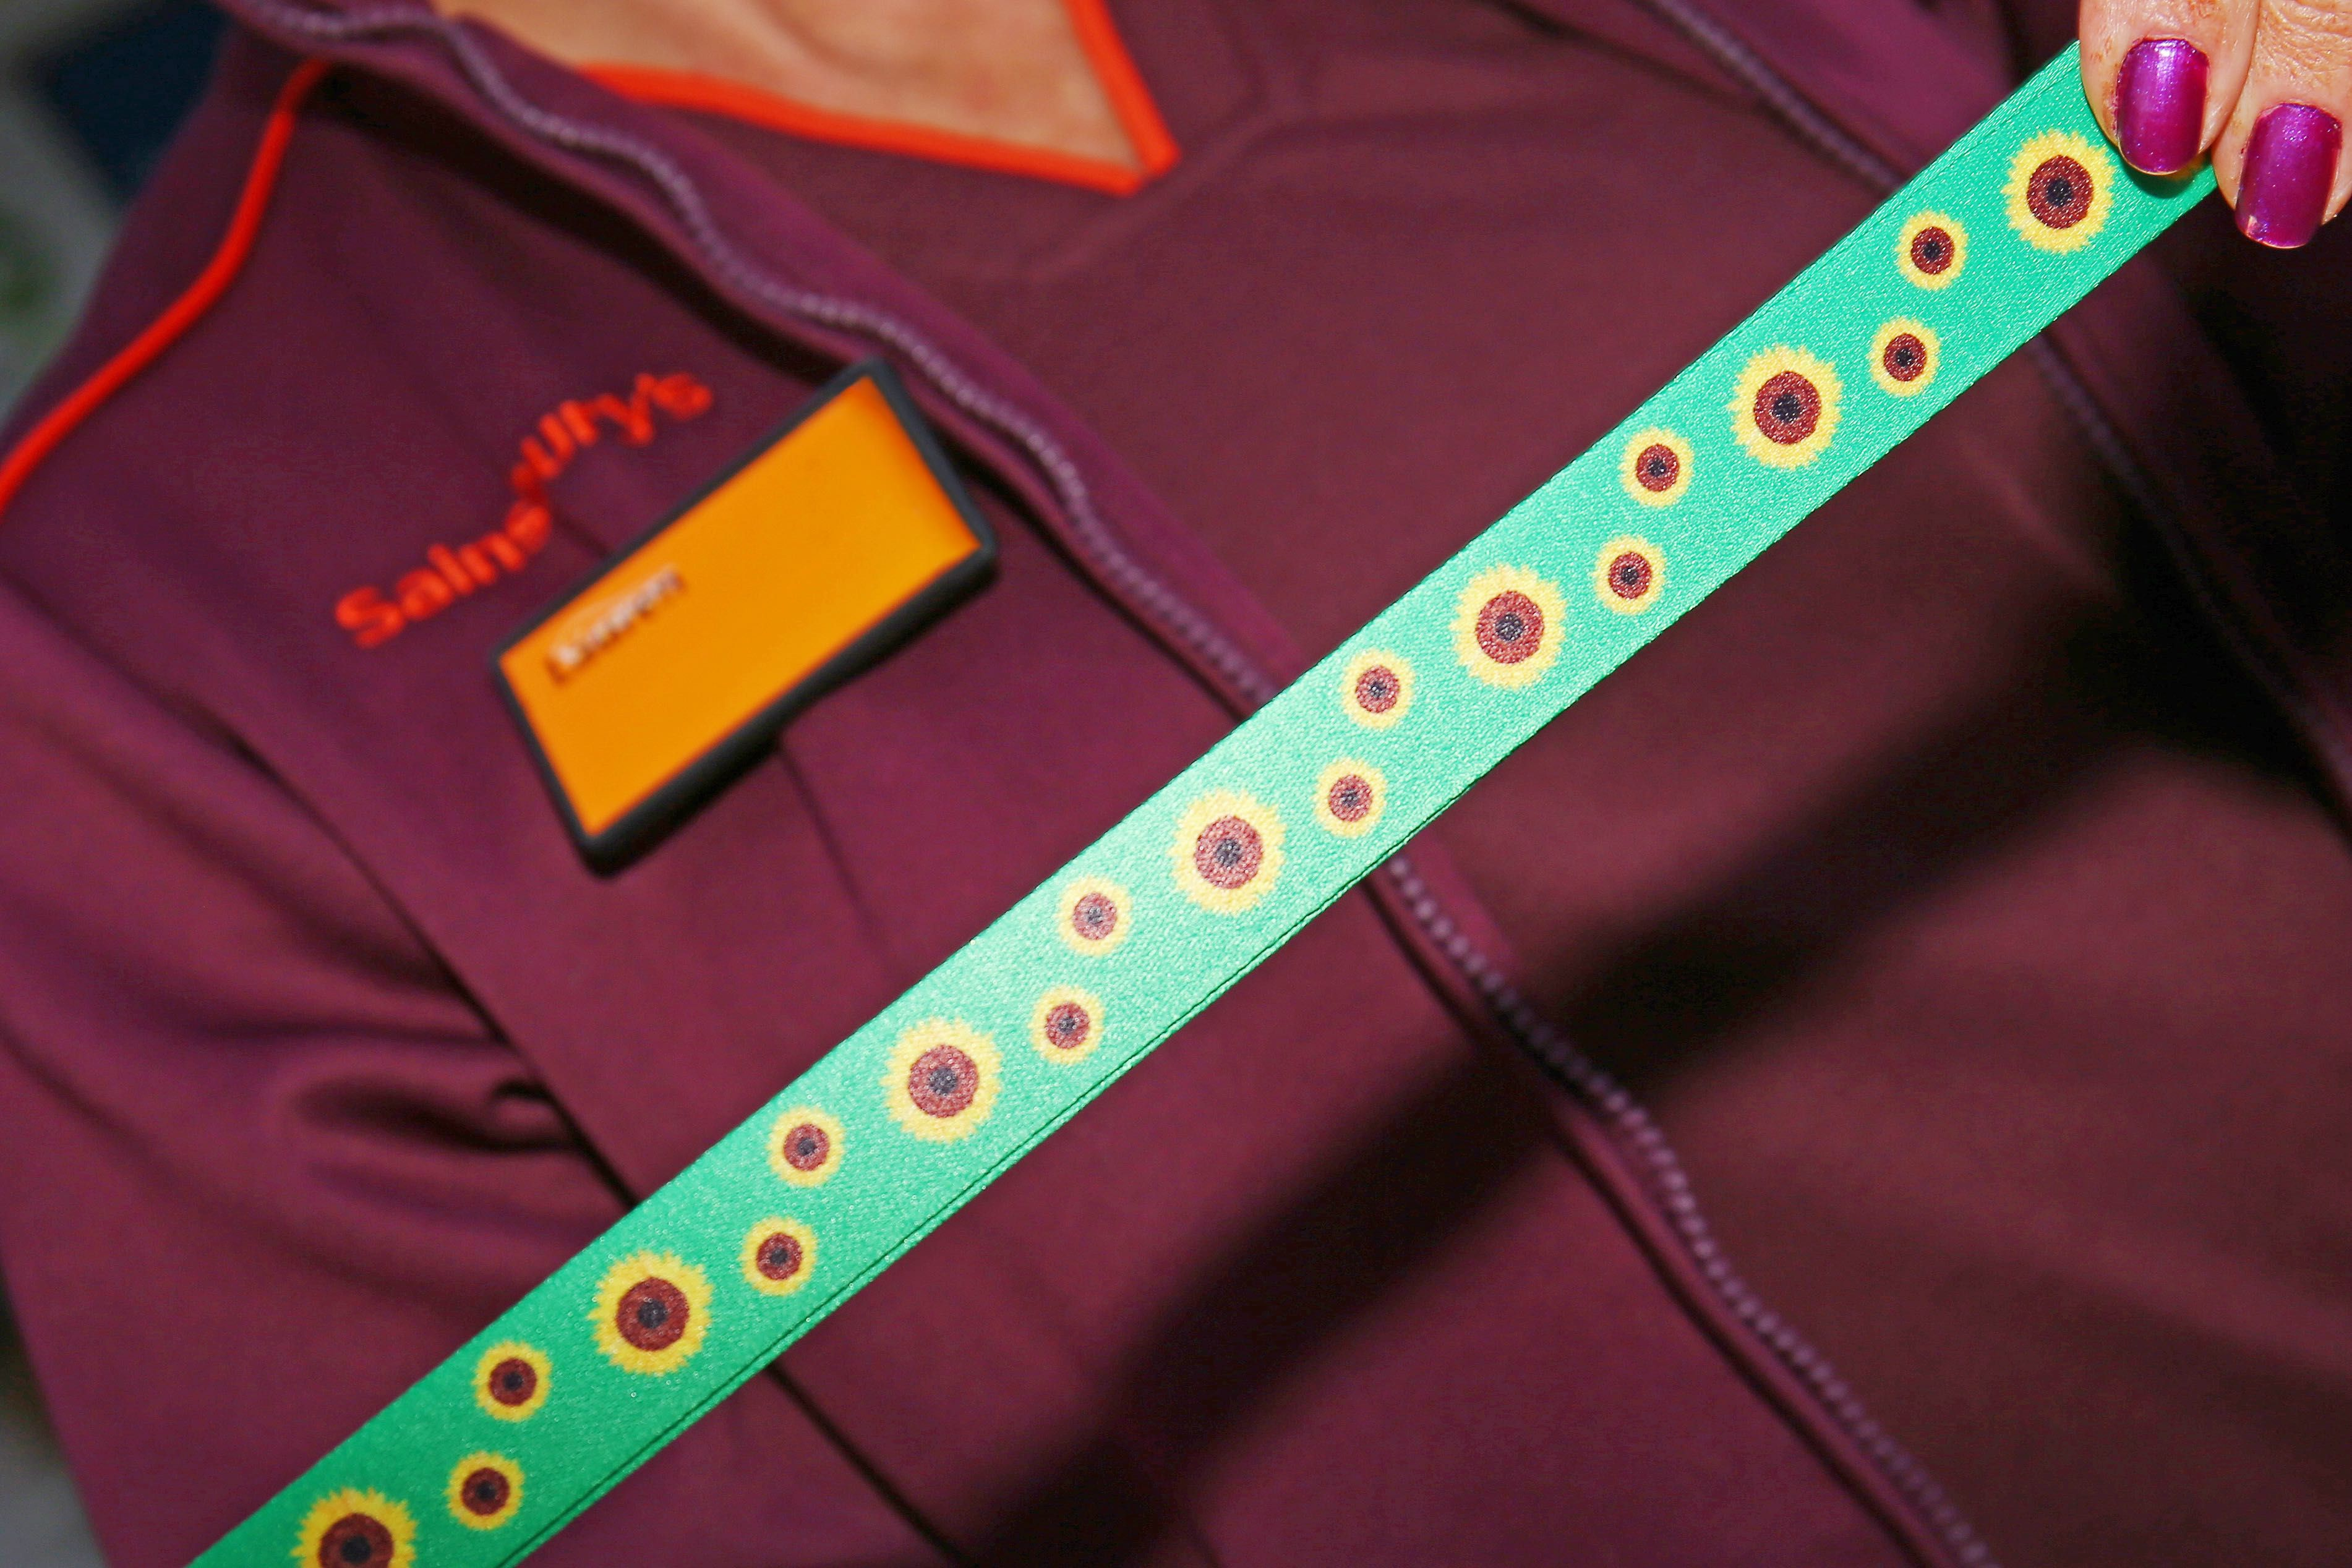 Sainsbury's Rolls Out Sunflower Lanyard Initiative To Help Shoppers With Hidden Disabilities